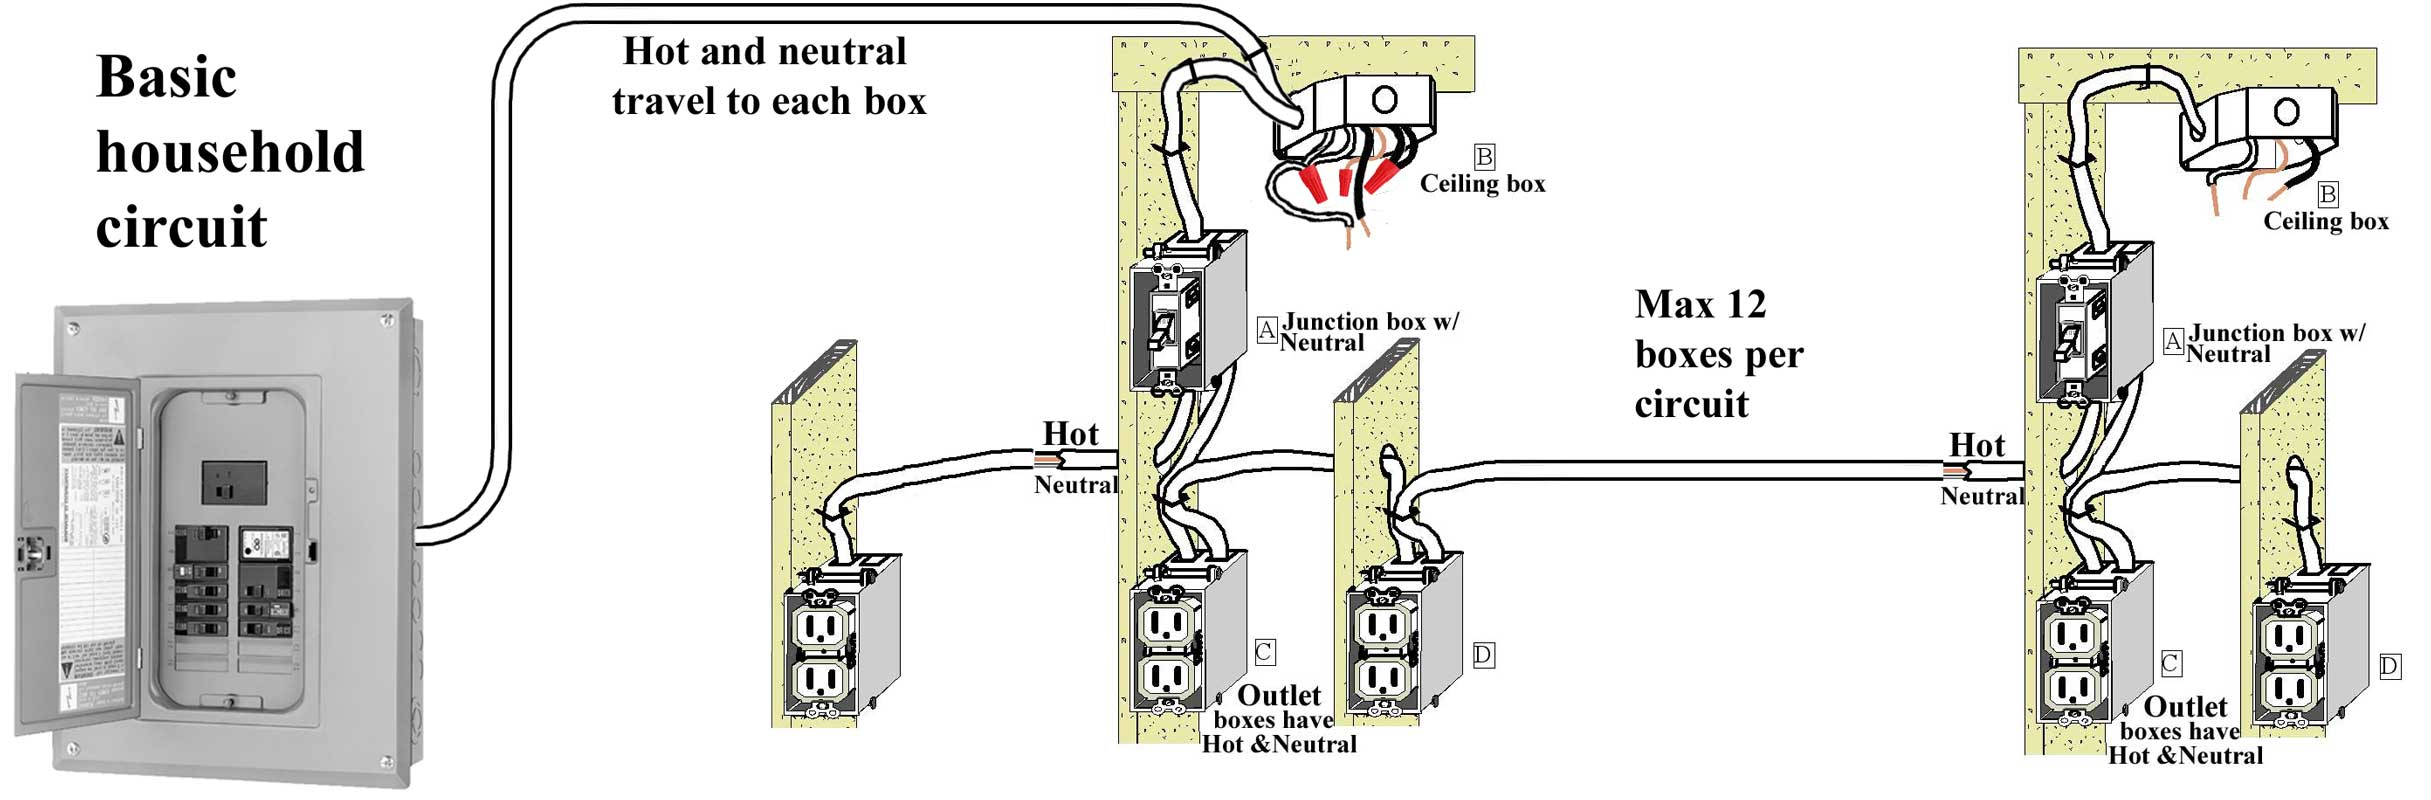 How To Drop Wire From Attic Into Old Work Box Double Light Switch Wiring Diagram Larger Image